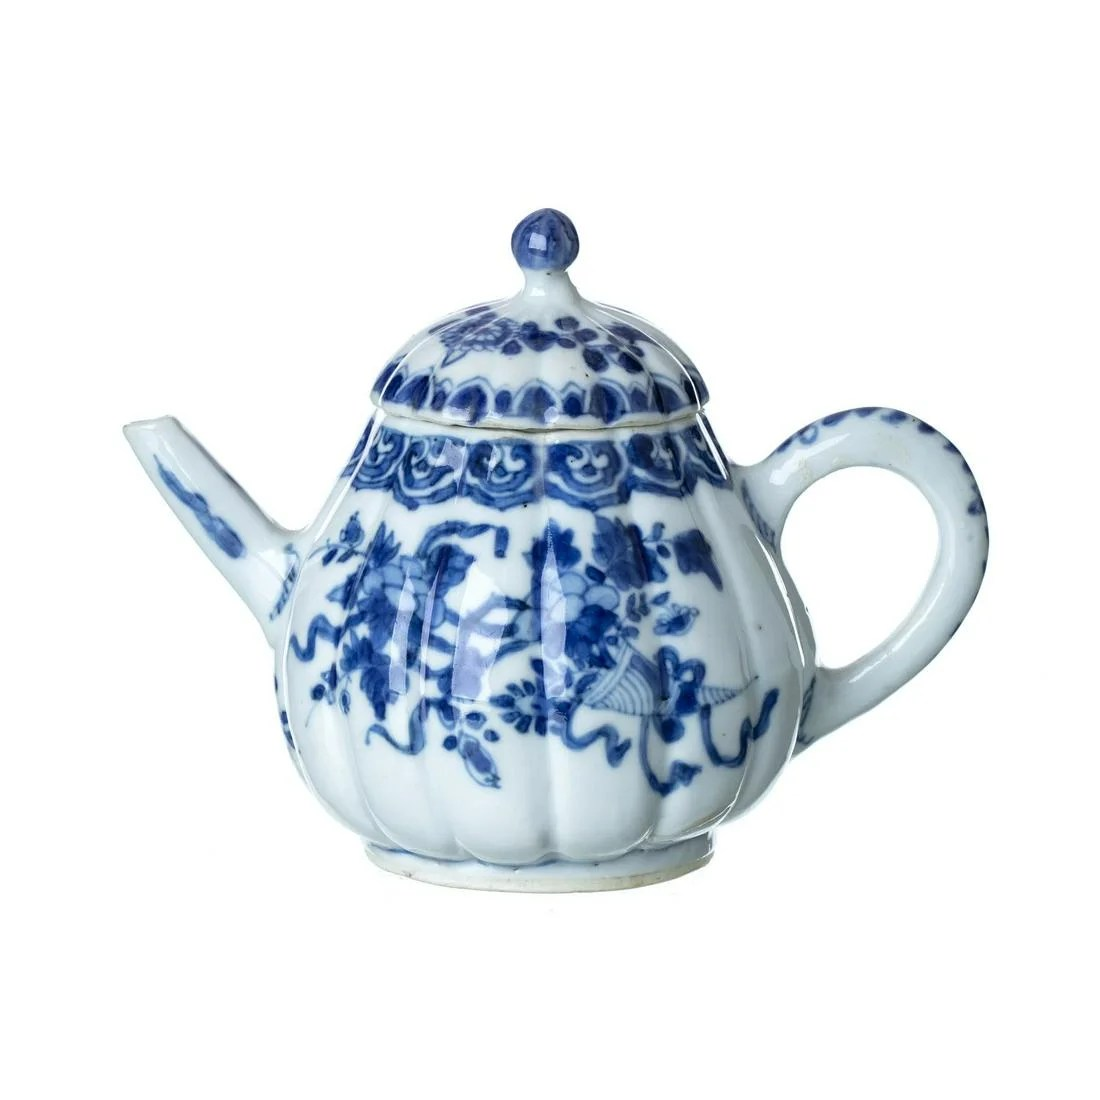 China porcelain teapot, Kangxi